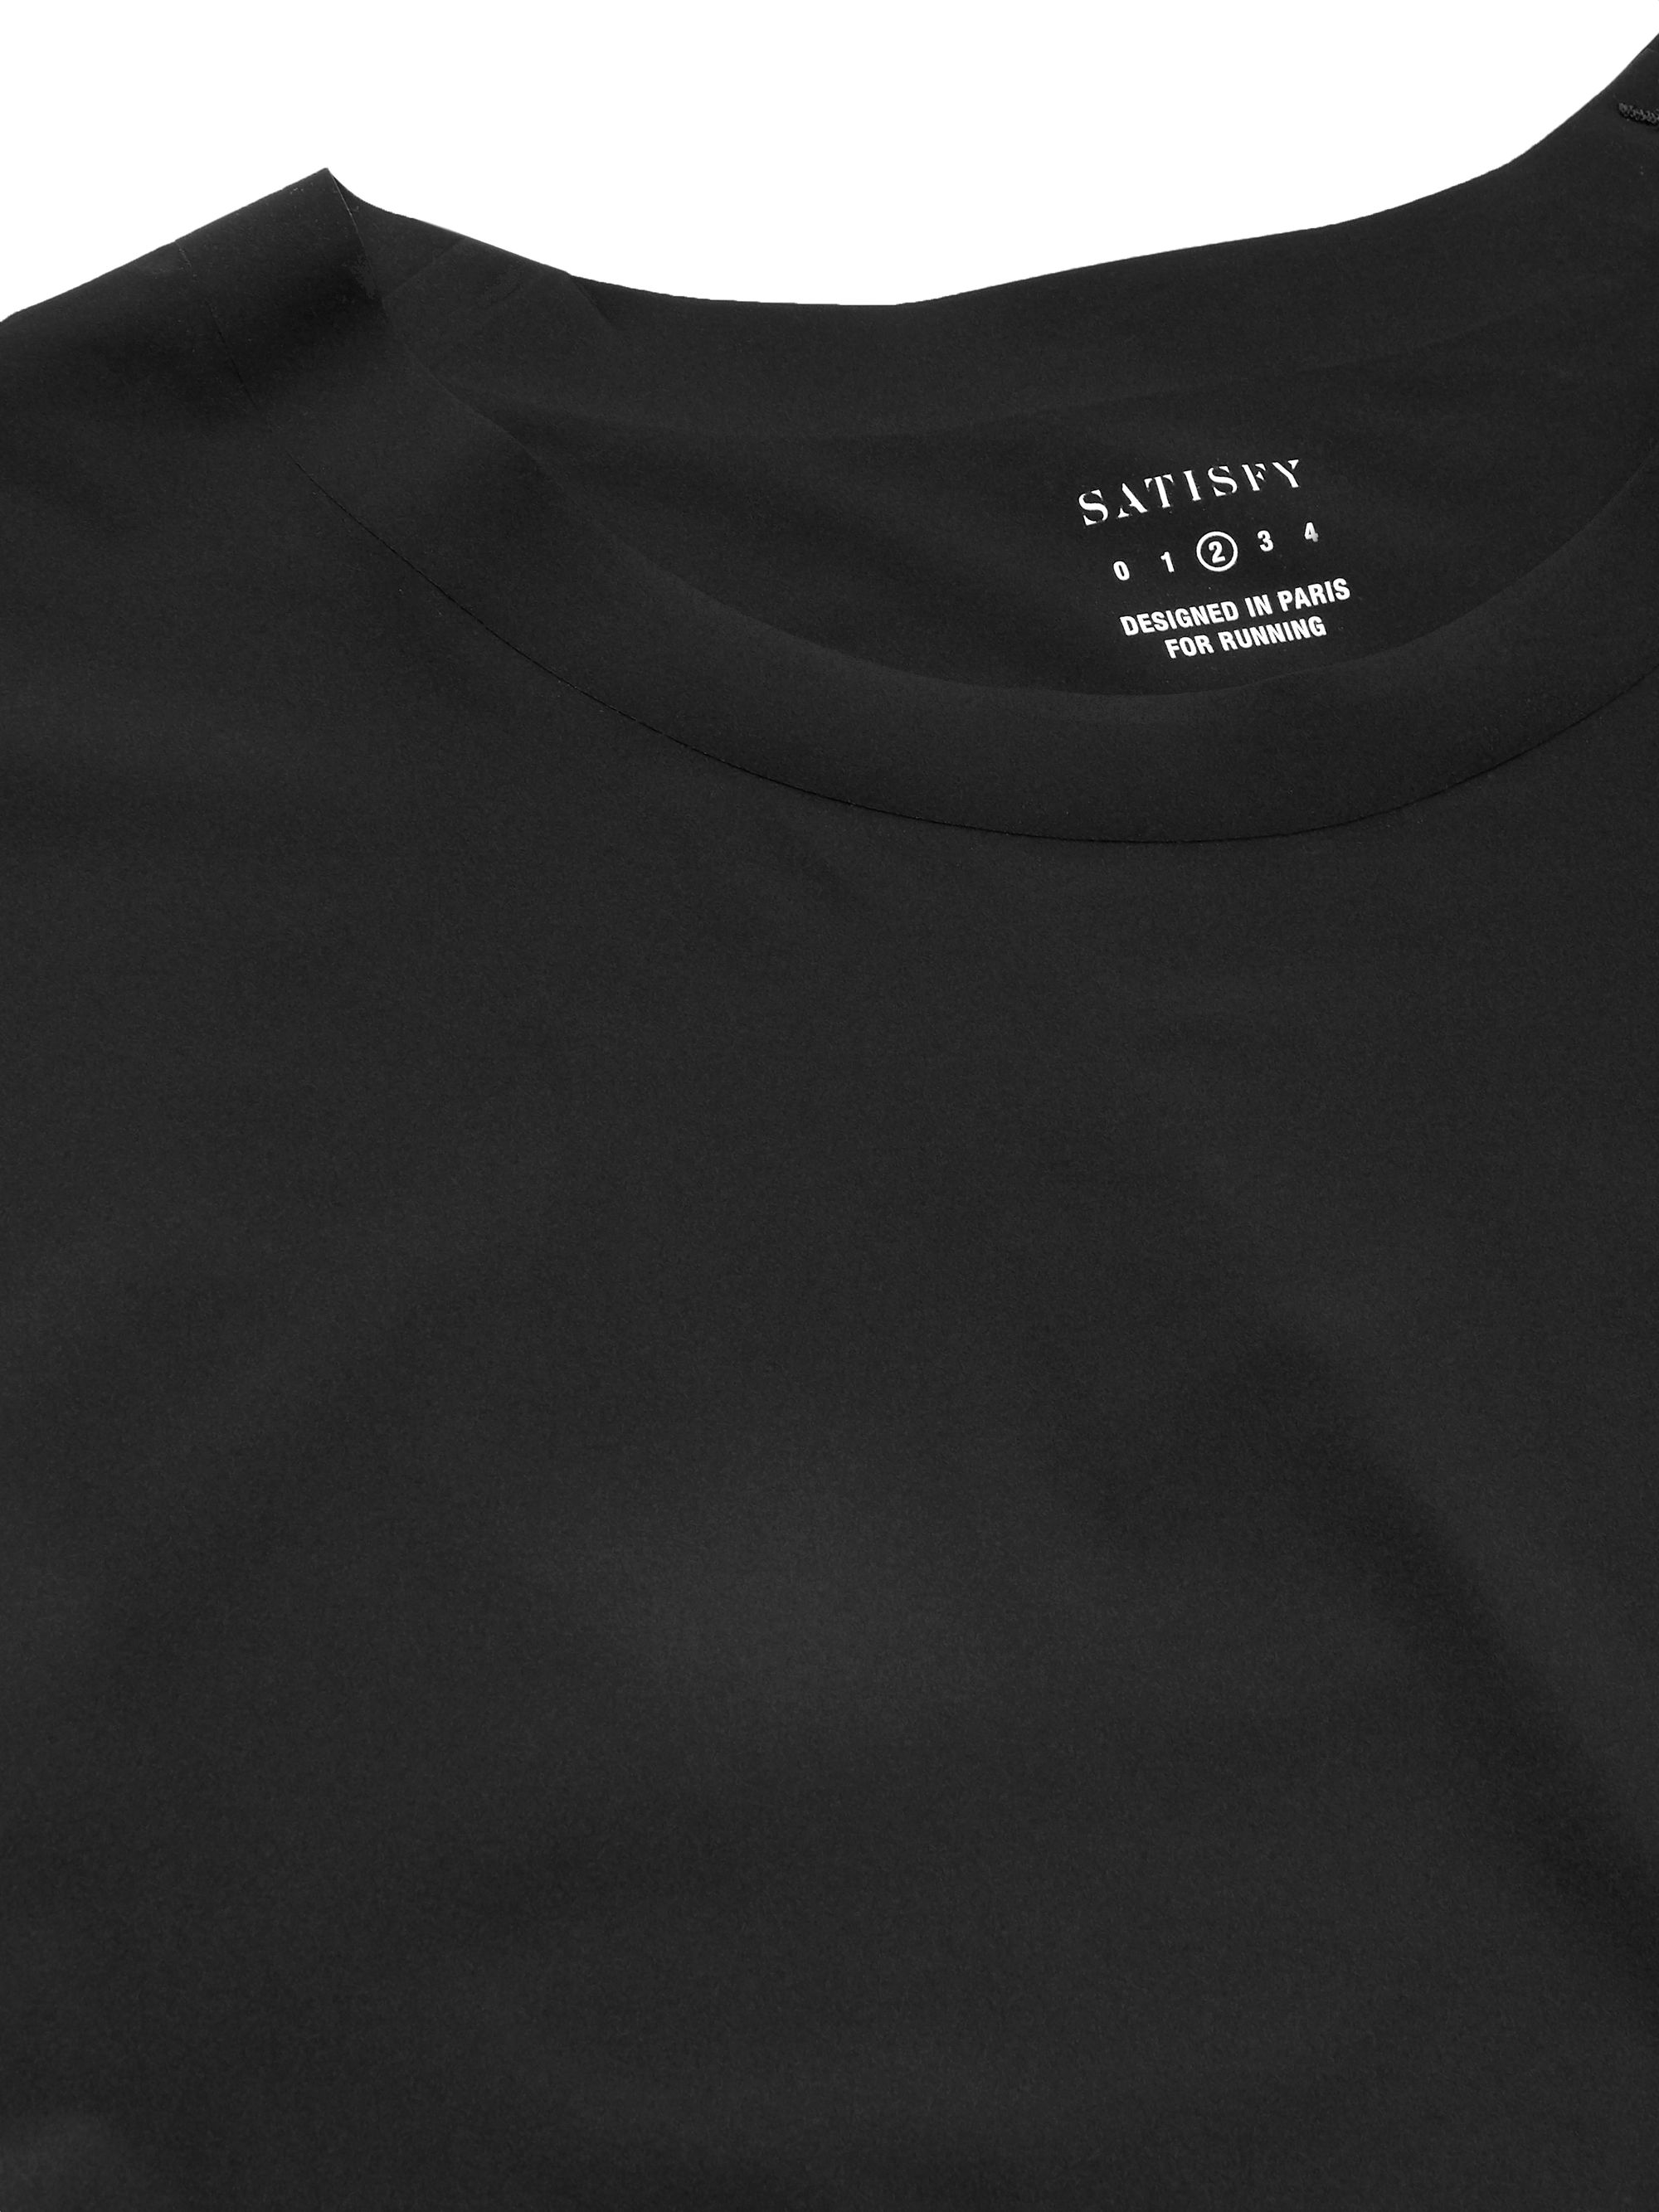 Satisfy Printed Justice Stretch-Jersey T-Shirt